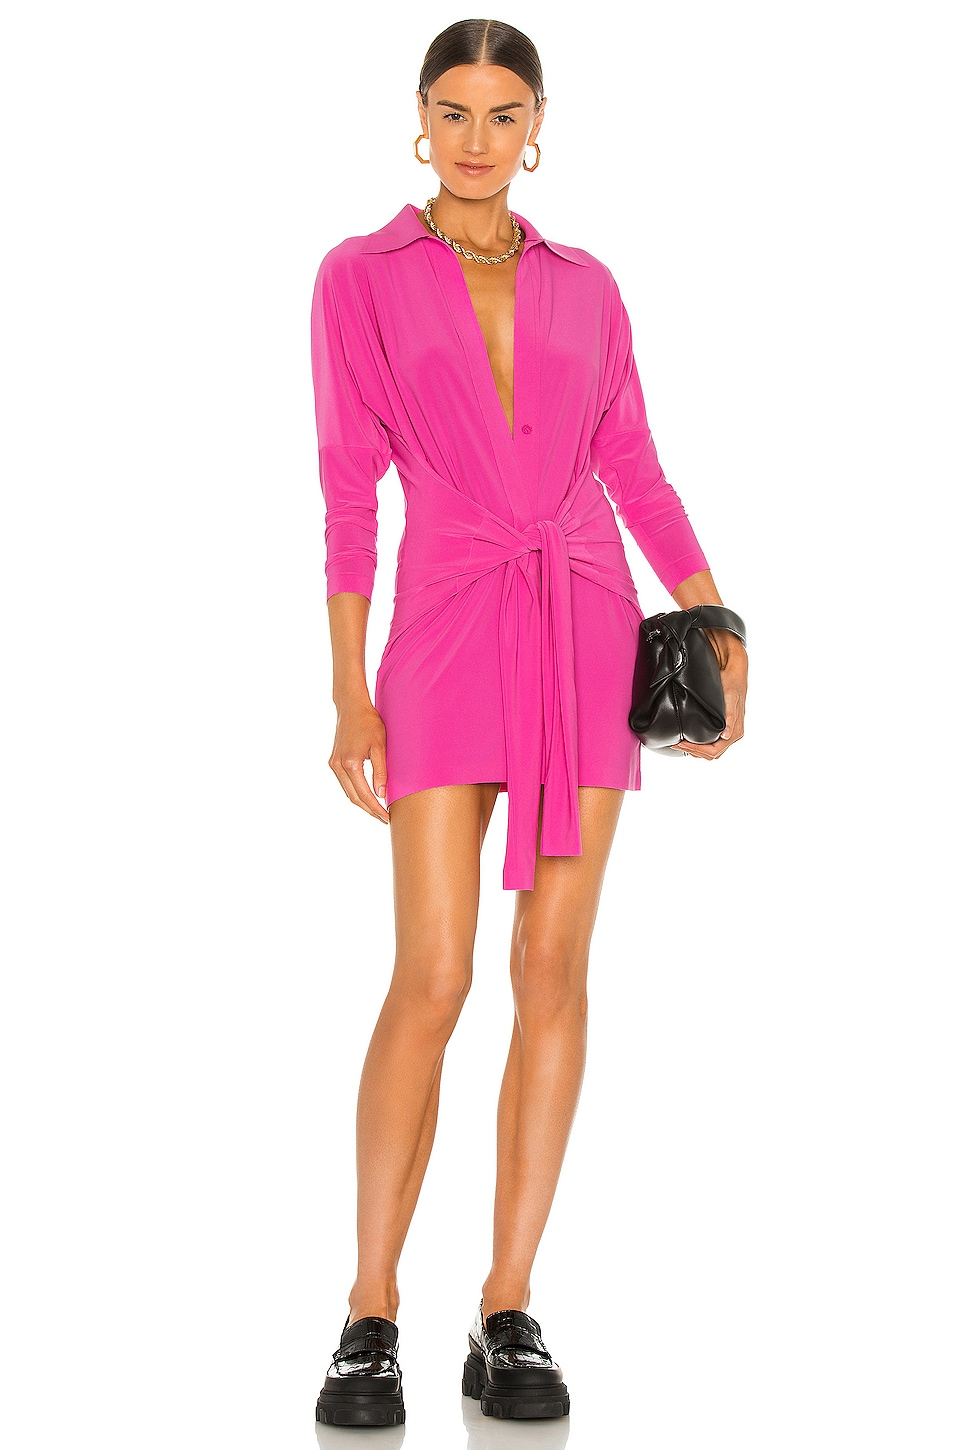 Norma Kamali x REVOLVE Mini Tie Front NK Shirt Dress in Orchid Pink